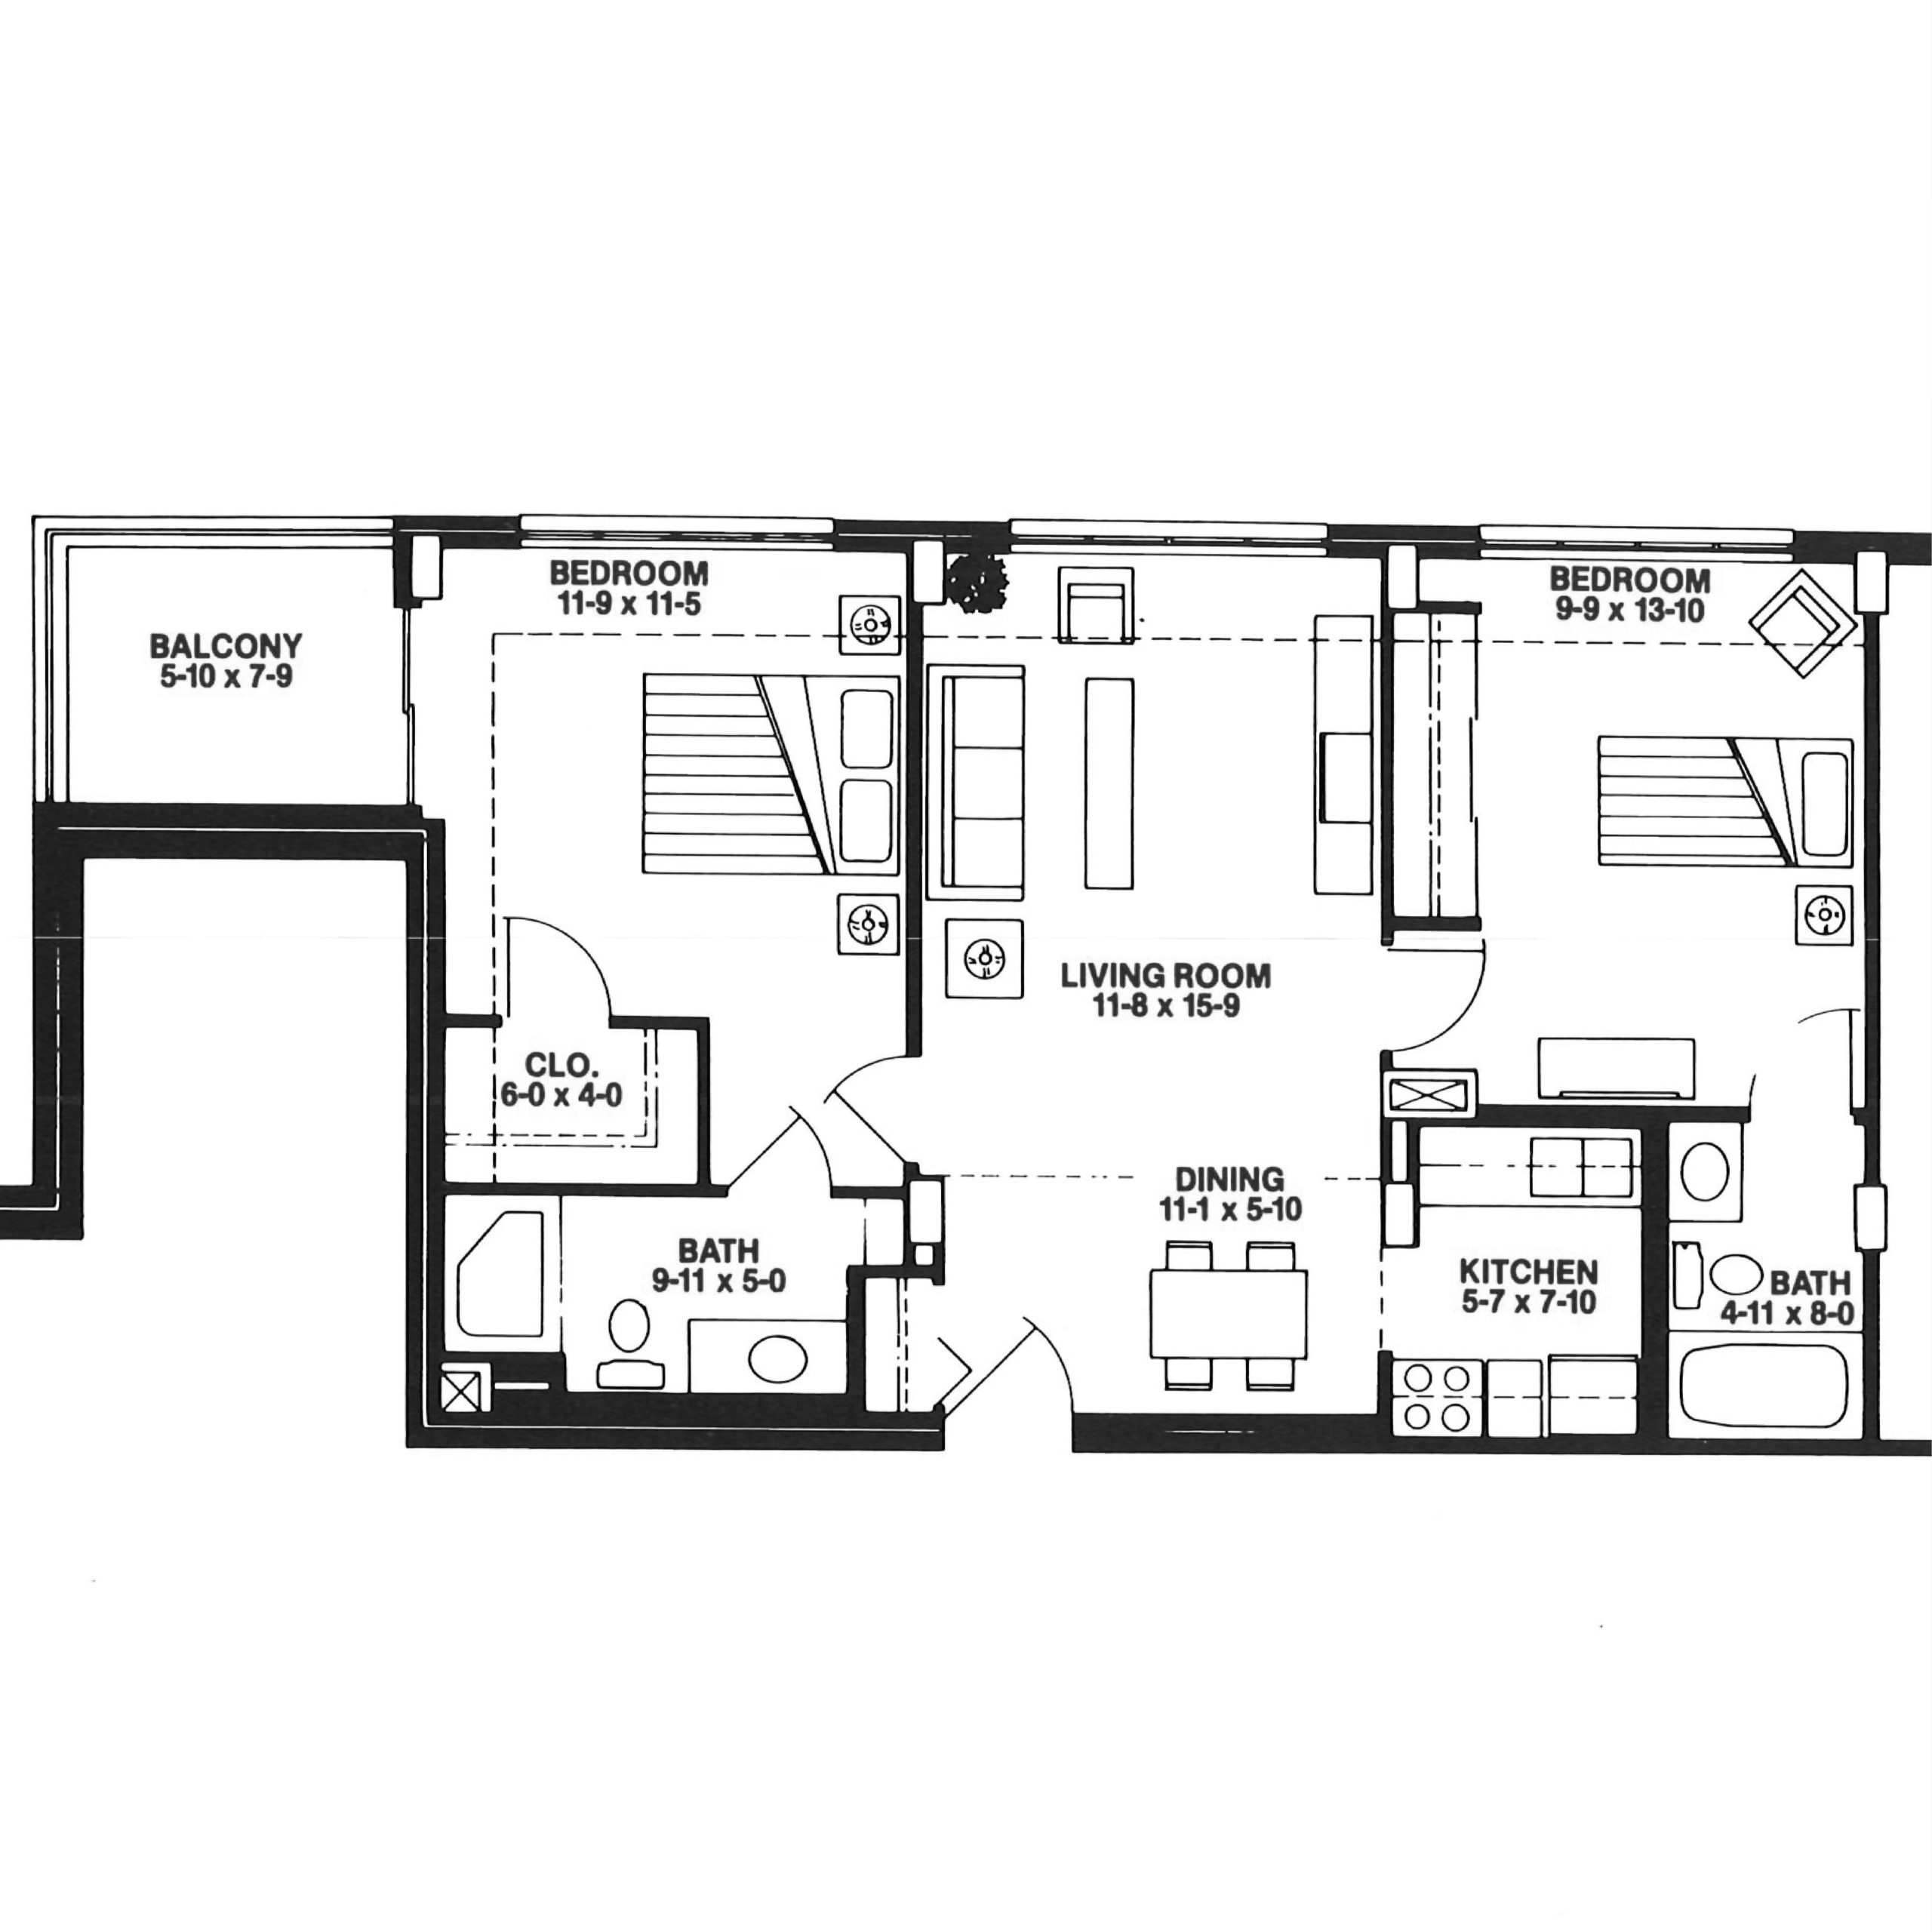 The Skyline floor plan blueprint